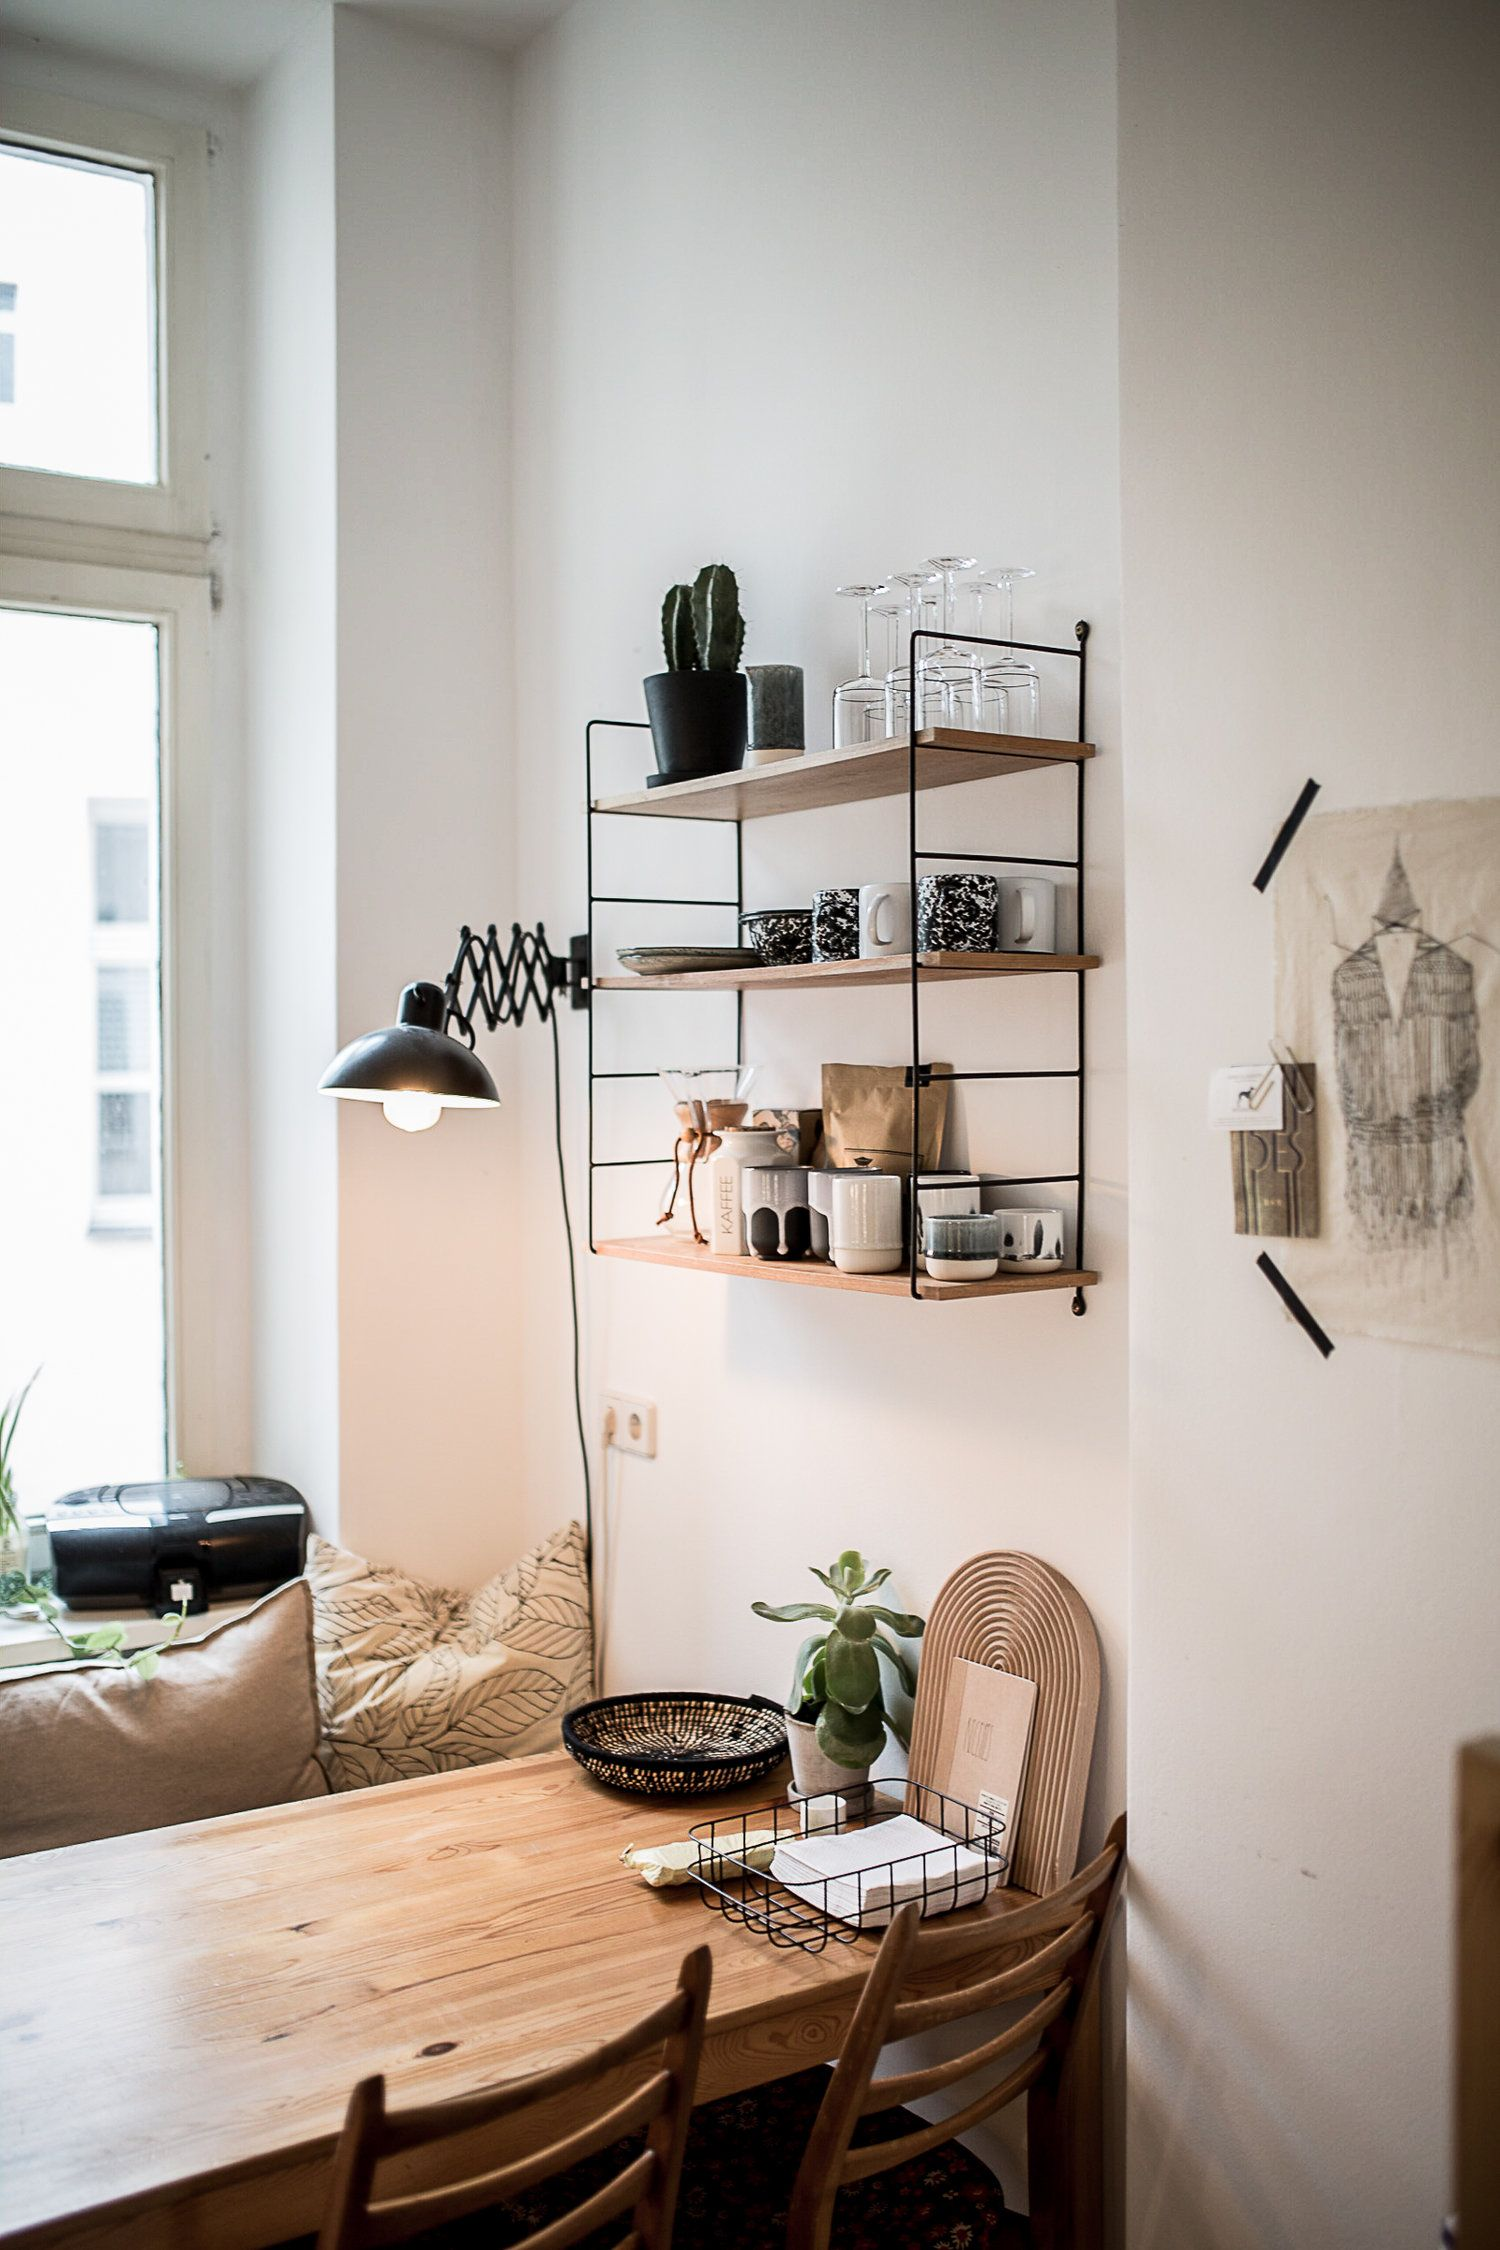 auf eine tasse tee bei tim labenda kitchen und. Black Bedroom Furniture Sets. Home Design Ideas